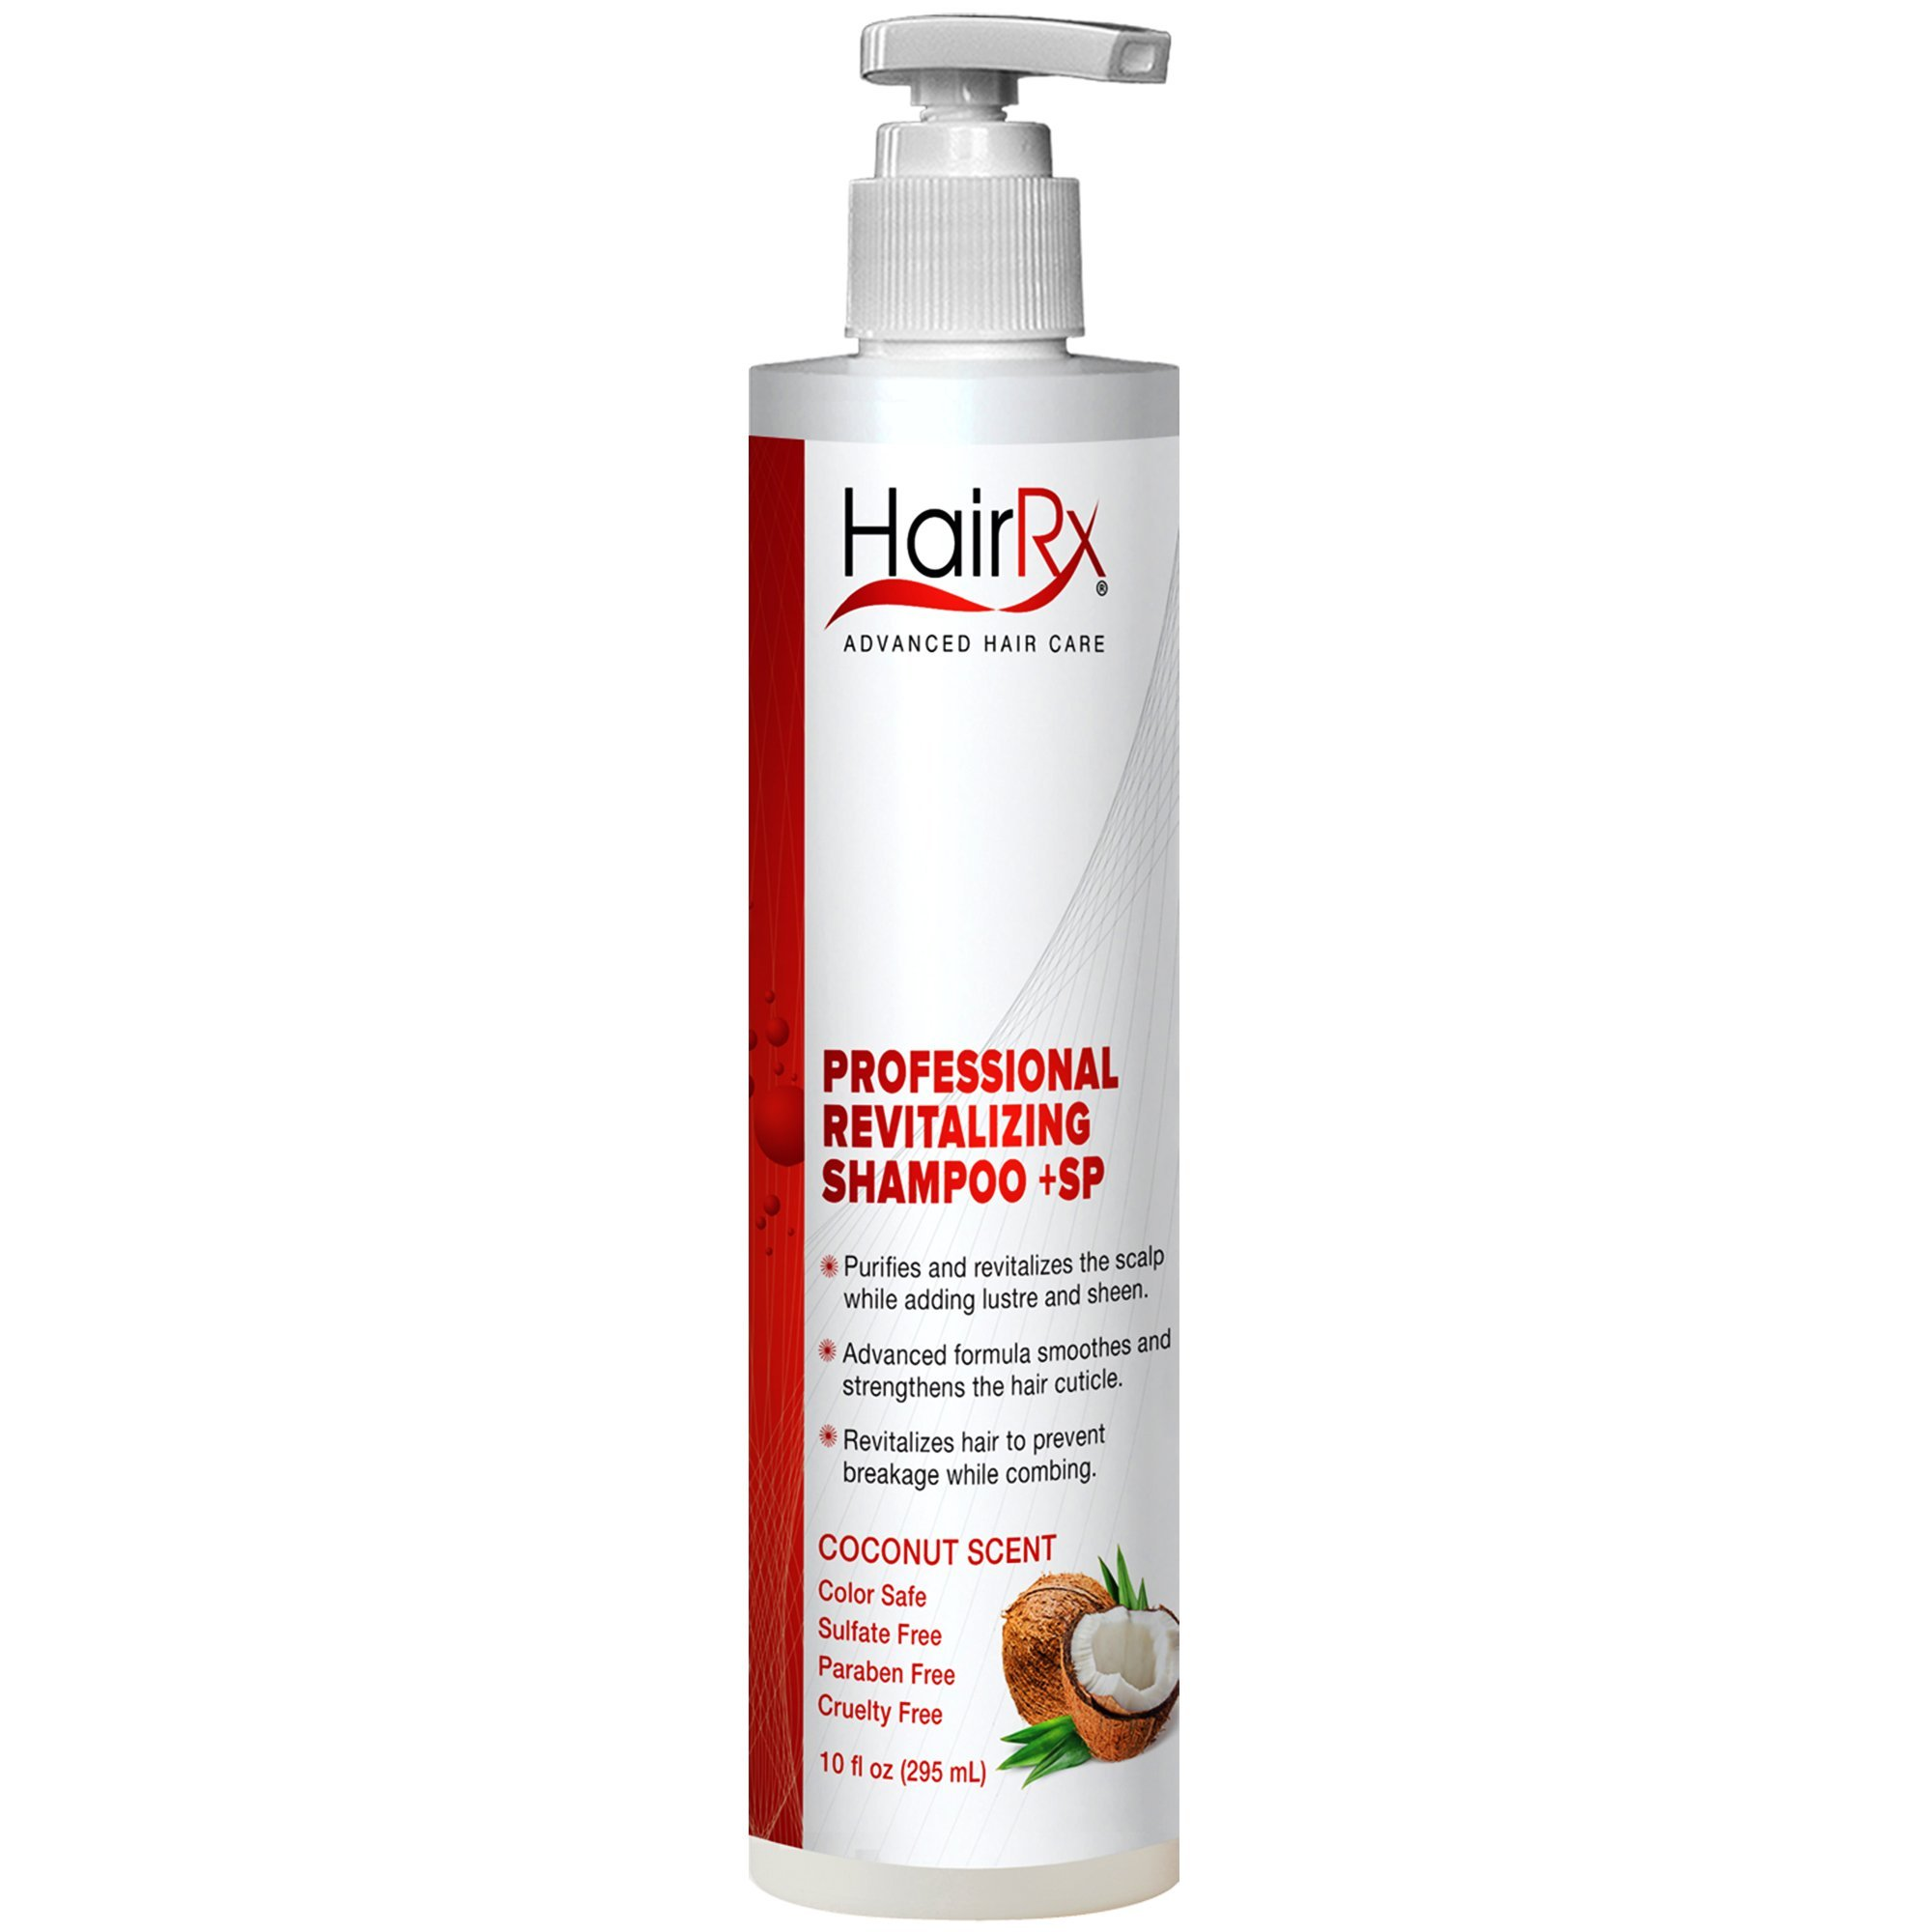 HairRx Professional Revitalizing Shampoo +SP (for Oily Scalps) with Pump, Light Lather, Coconut Scent, 10 Ounce